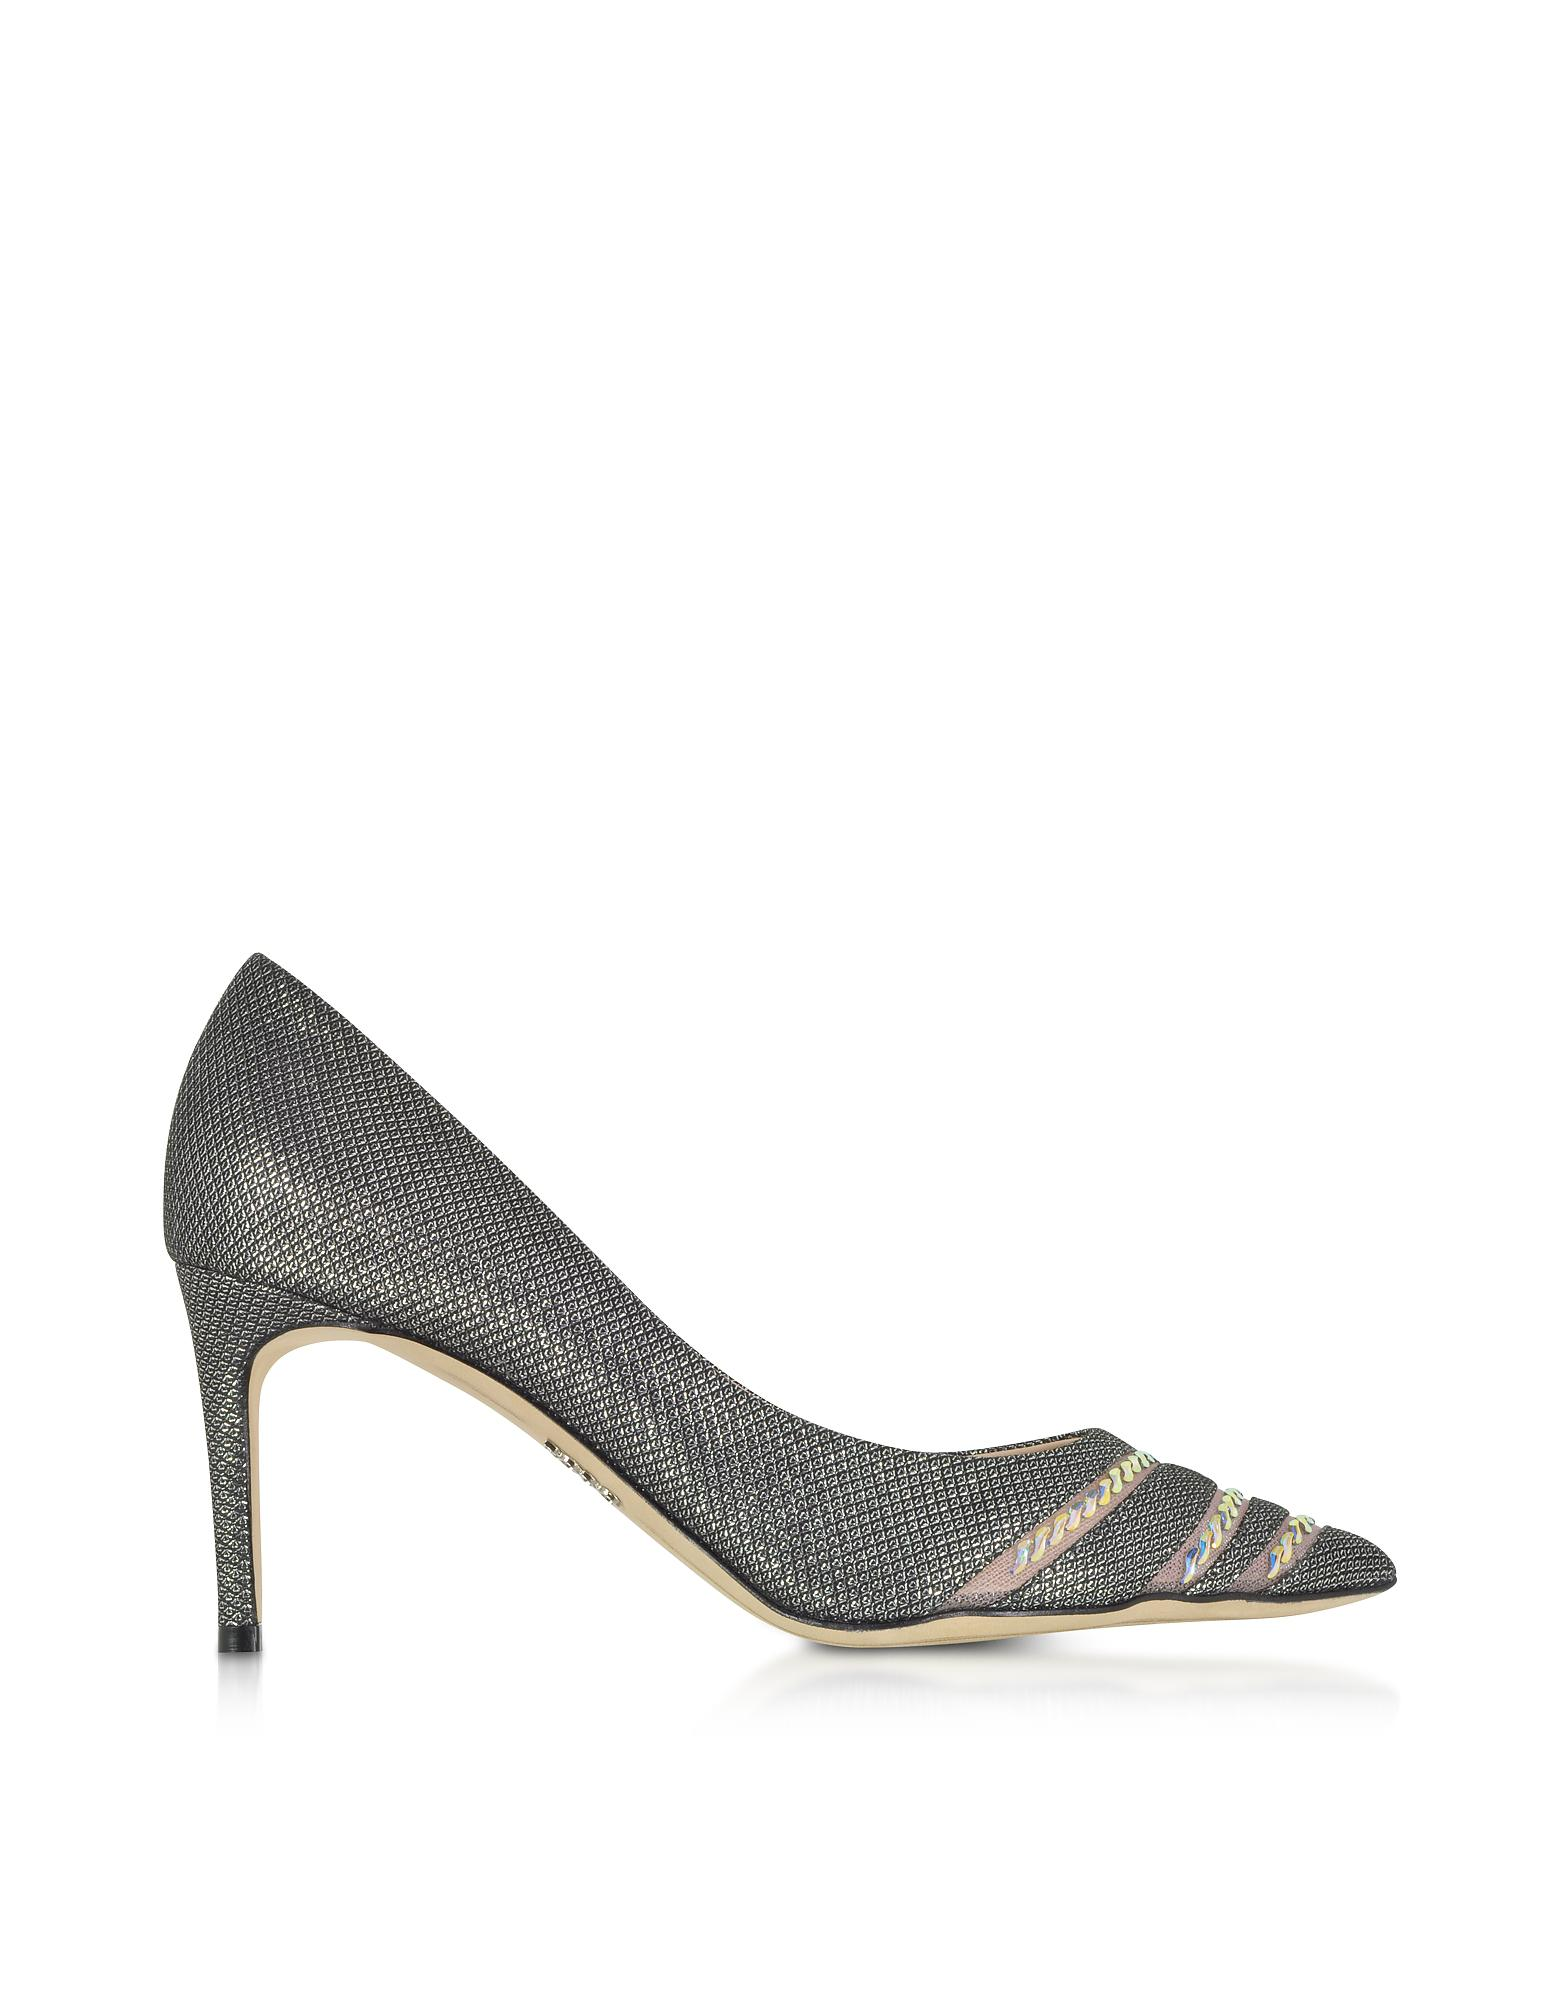 Rodo Suede Embellished Pumps outlet locations cheap price clearance fashion Style fh0yb28